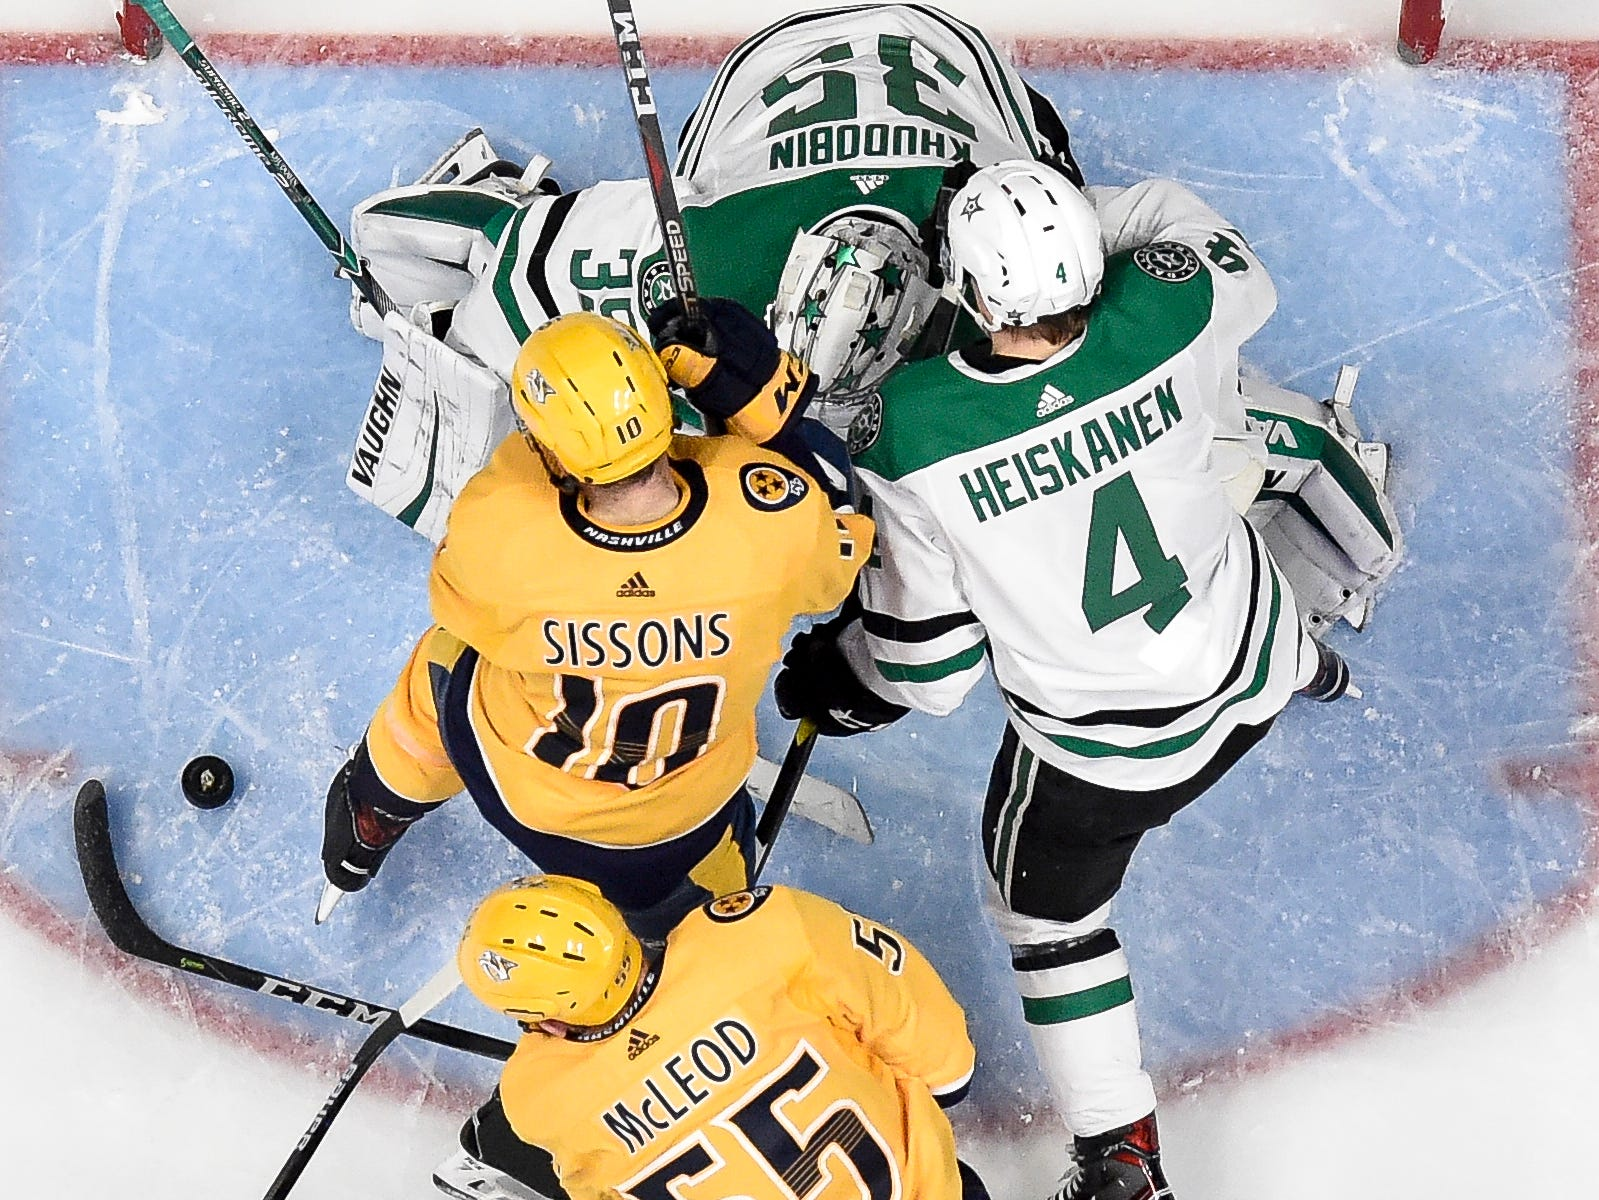 Dallas Stars goaltender Anton Khudobin (35) and defenseman Miro Heiskanen (4) defend against Nashville Predators center Colton Sissons (10) and left wing Cody McLeod (55) during the second period at Bridgestone Arena in Nashville, Tenn., Thursday, Feb. 7, 2019.